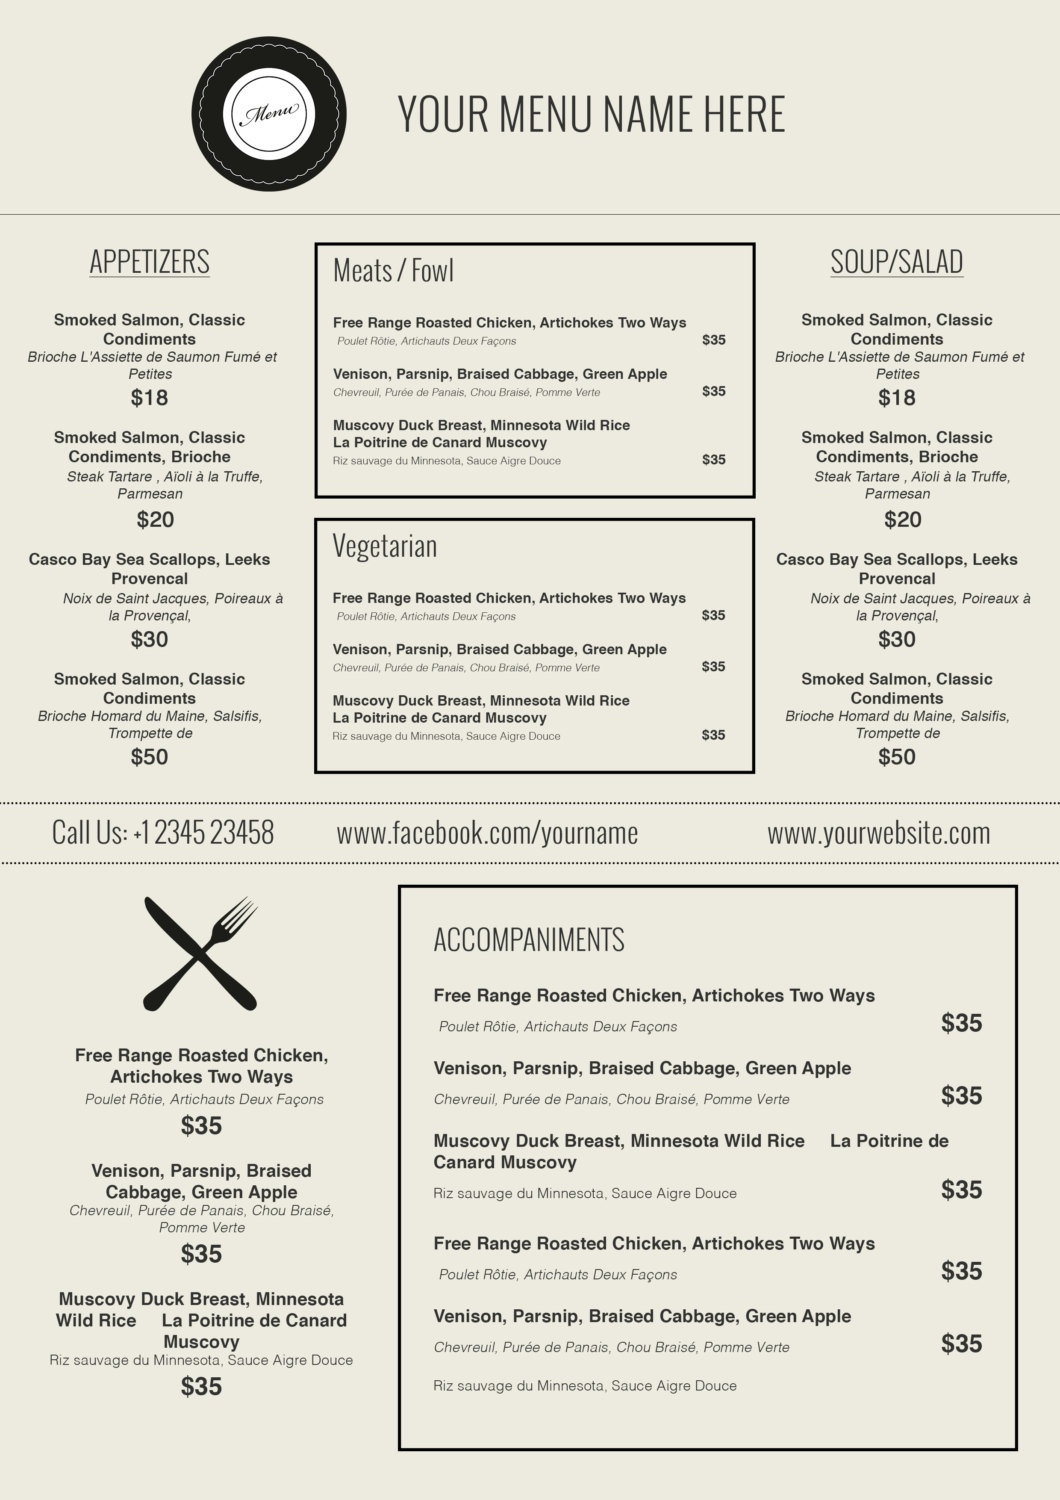 Microsoft Word Menu Templates - Demir.iso-Consulting.co - Menu Template Free Printable Word